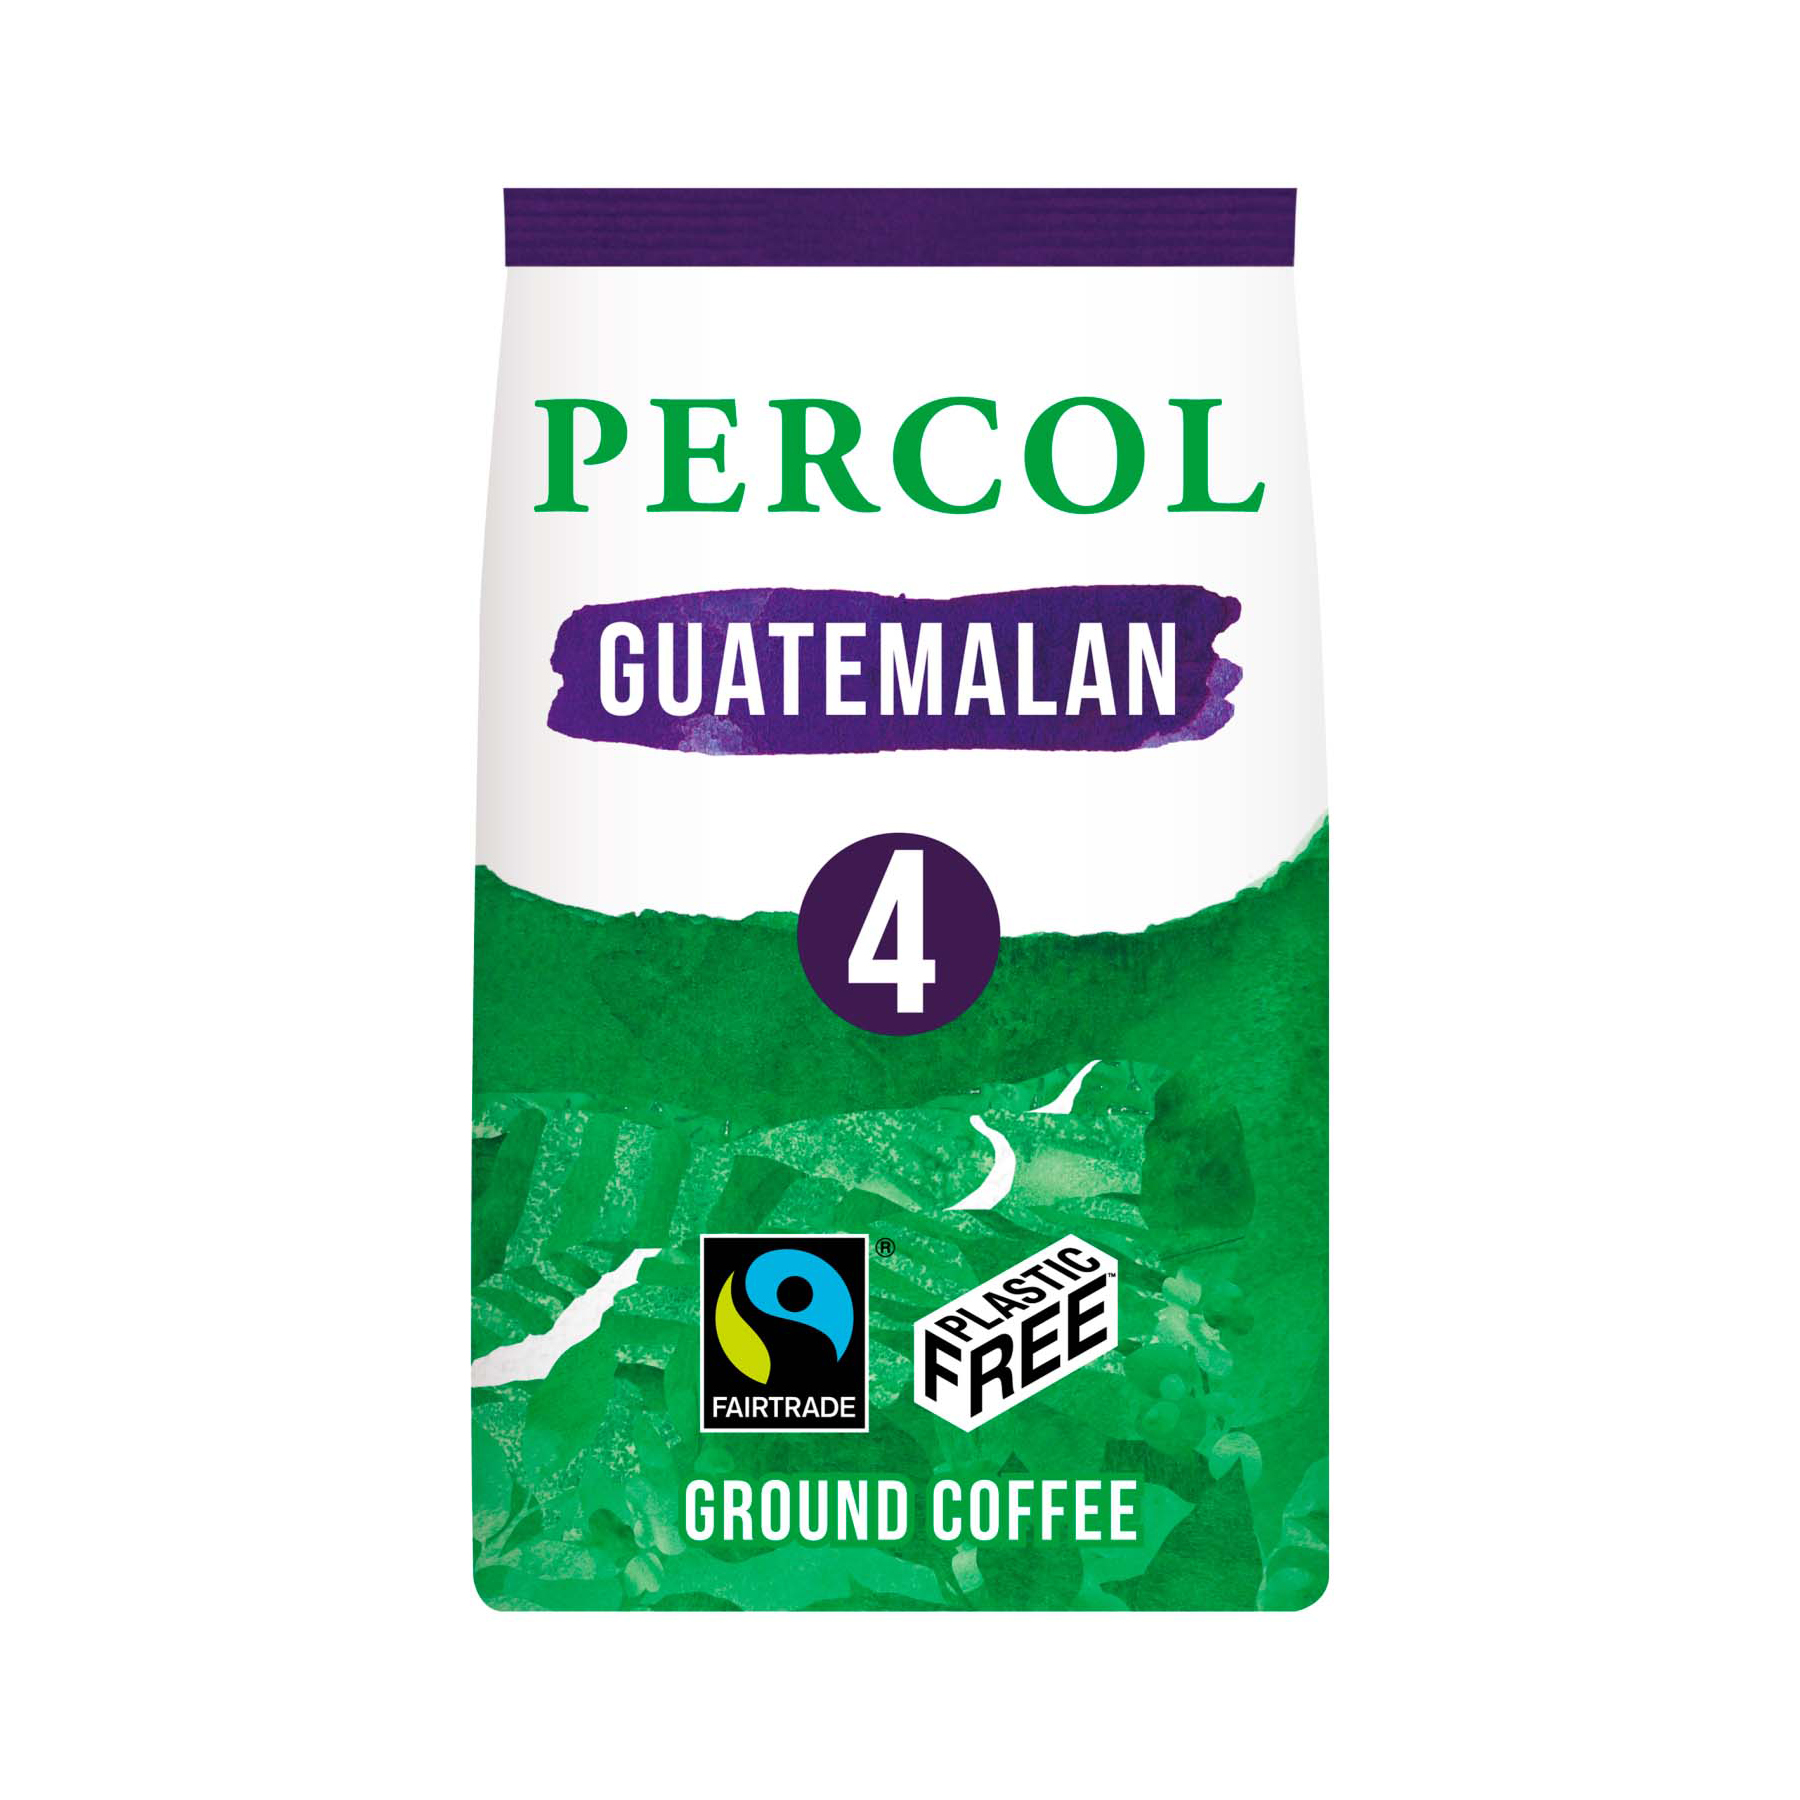 Coffee Percol Fairtrade Guatemala Ground Coffee Medium Roasted Plastic Free 200g Ref 0403272